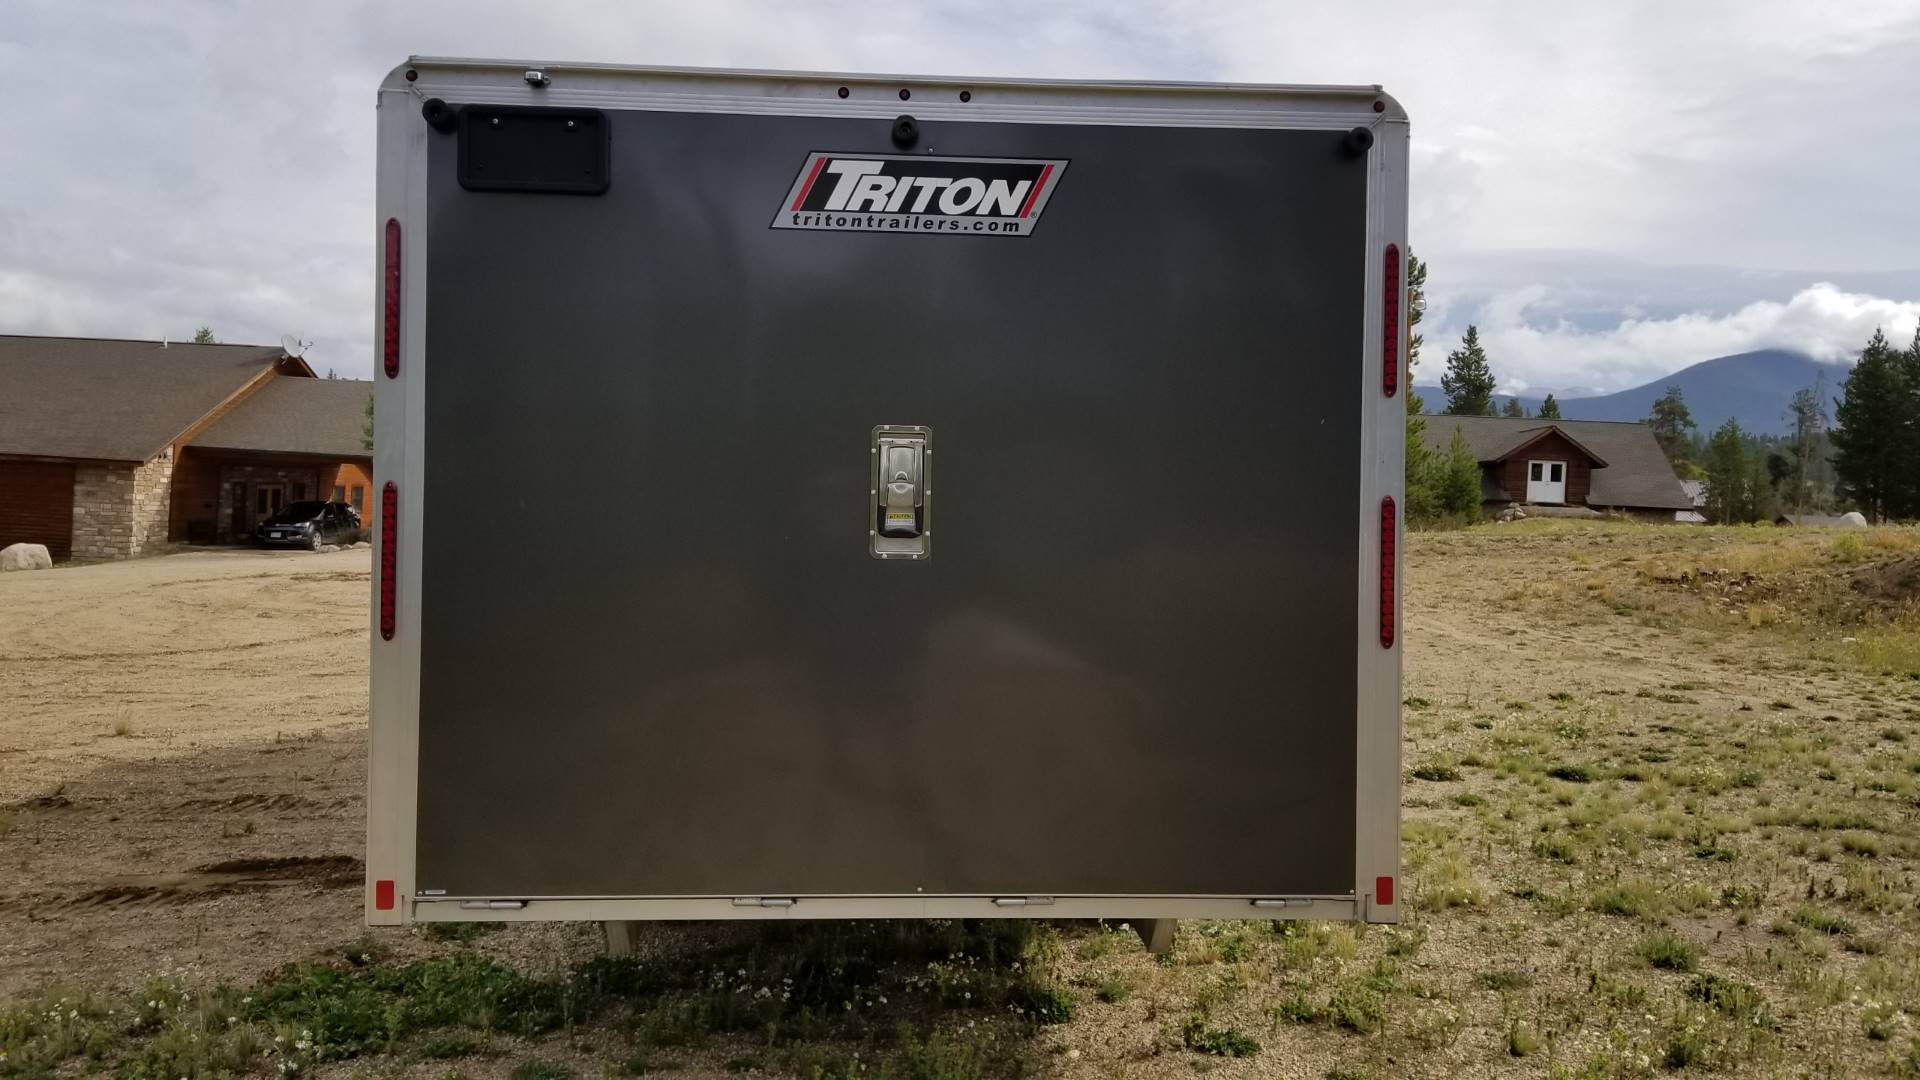 2018 Triton Trailers ENCLOSED 22' TRAILER in Grand Lake, Colorado